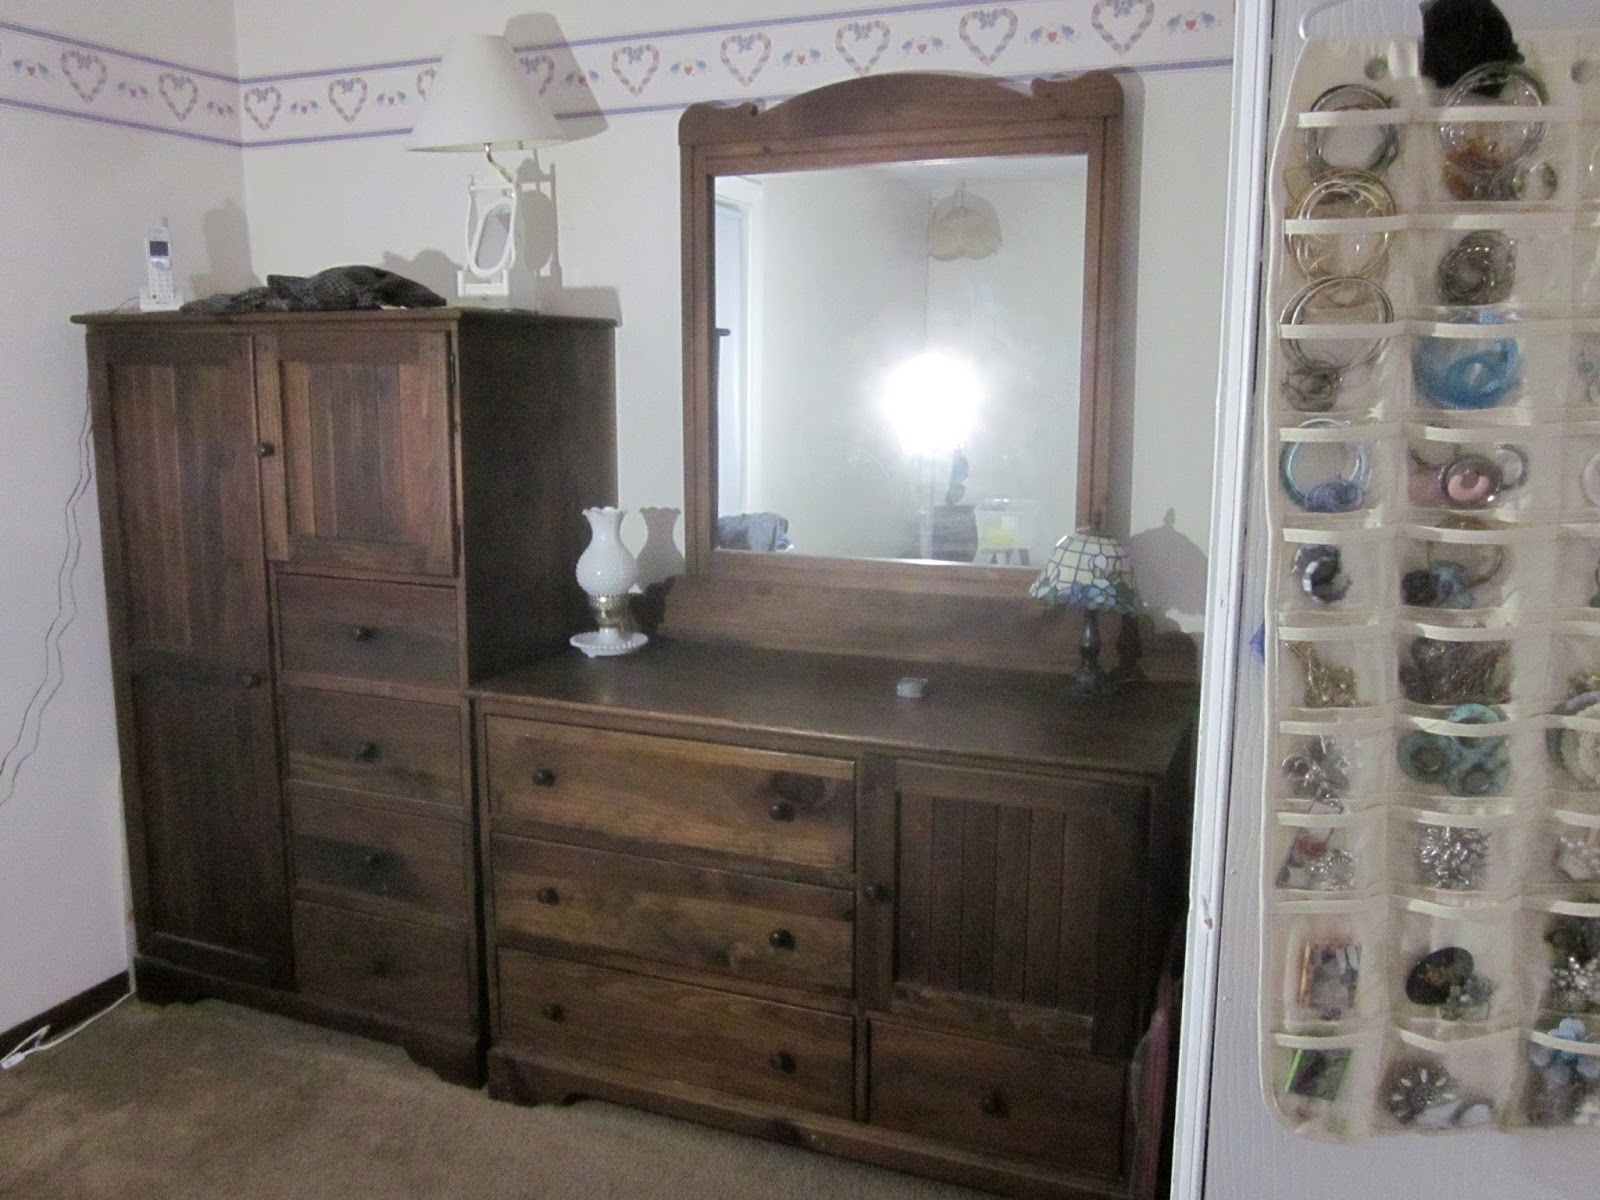 Old Bedroom Furniture #21: Bedroom Furniture Plymouth Newcastle Nsw